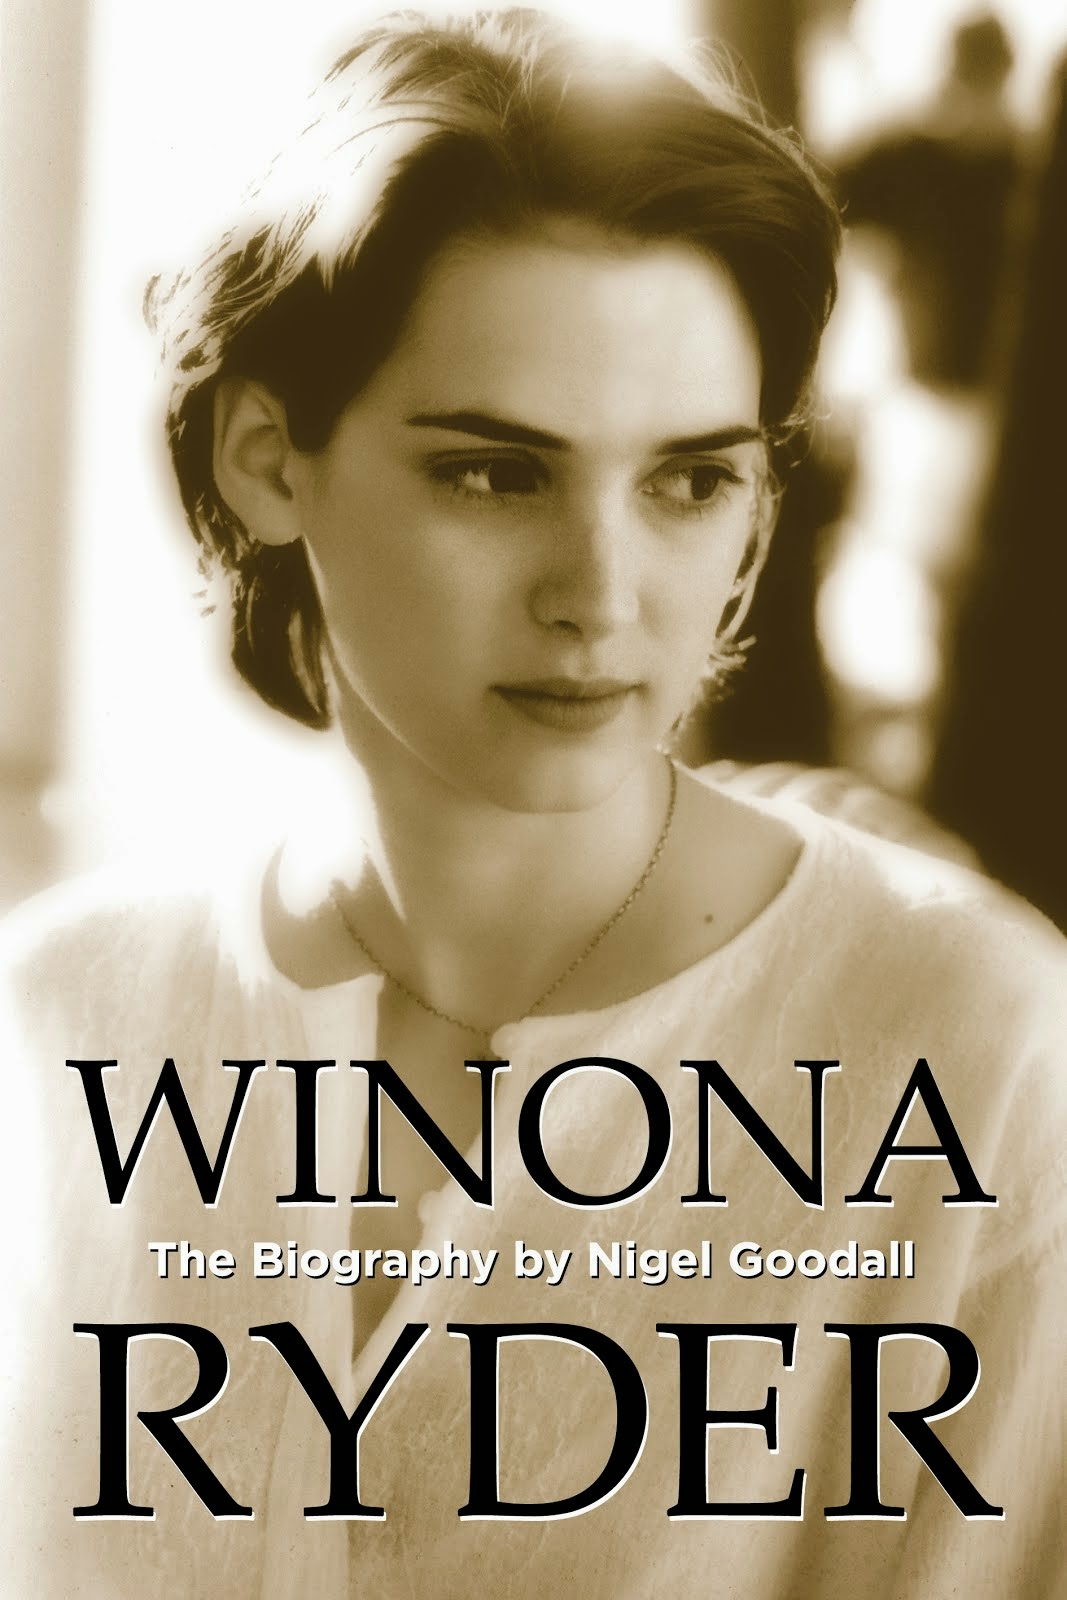 Winona Ryder - The Biography